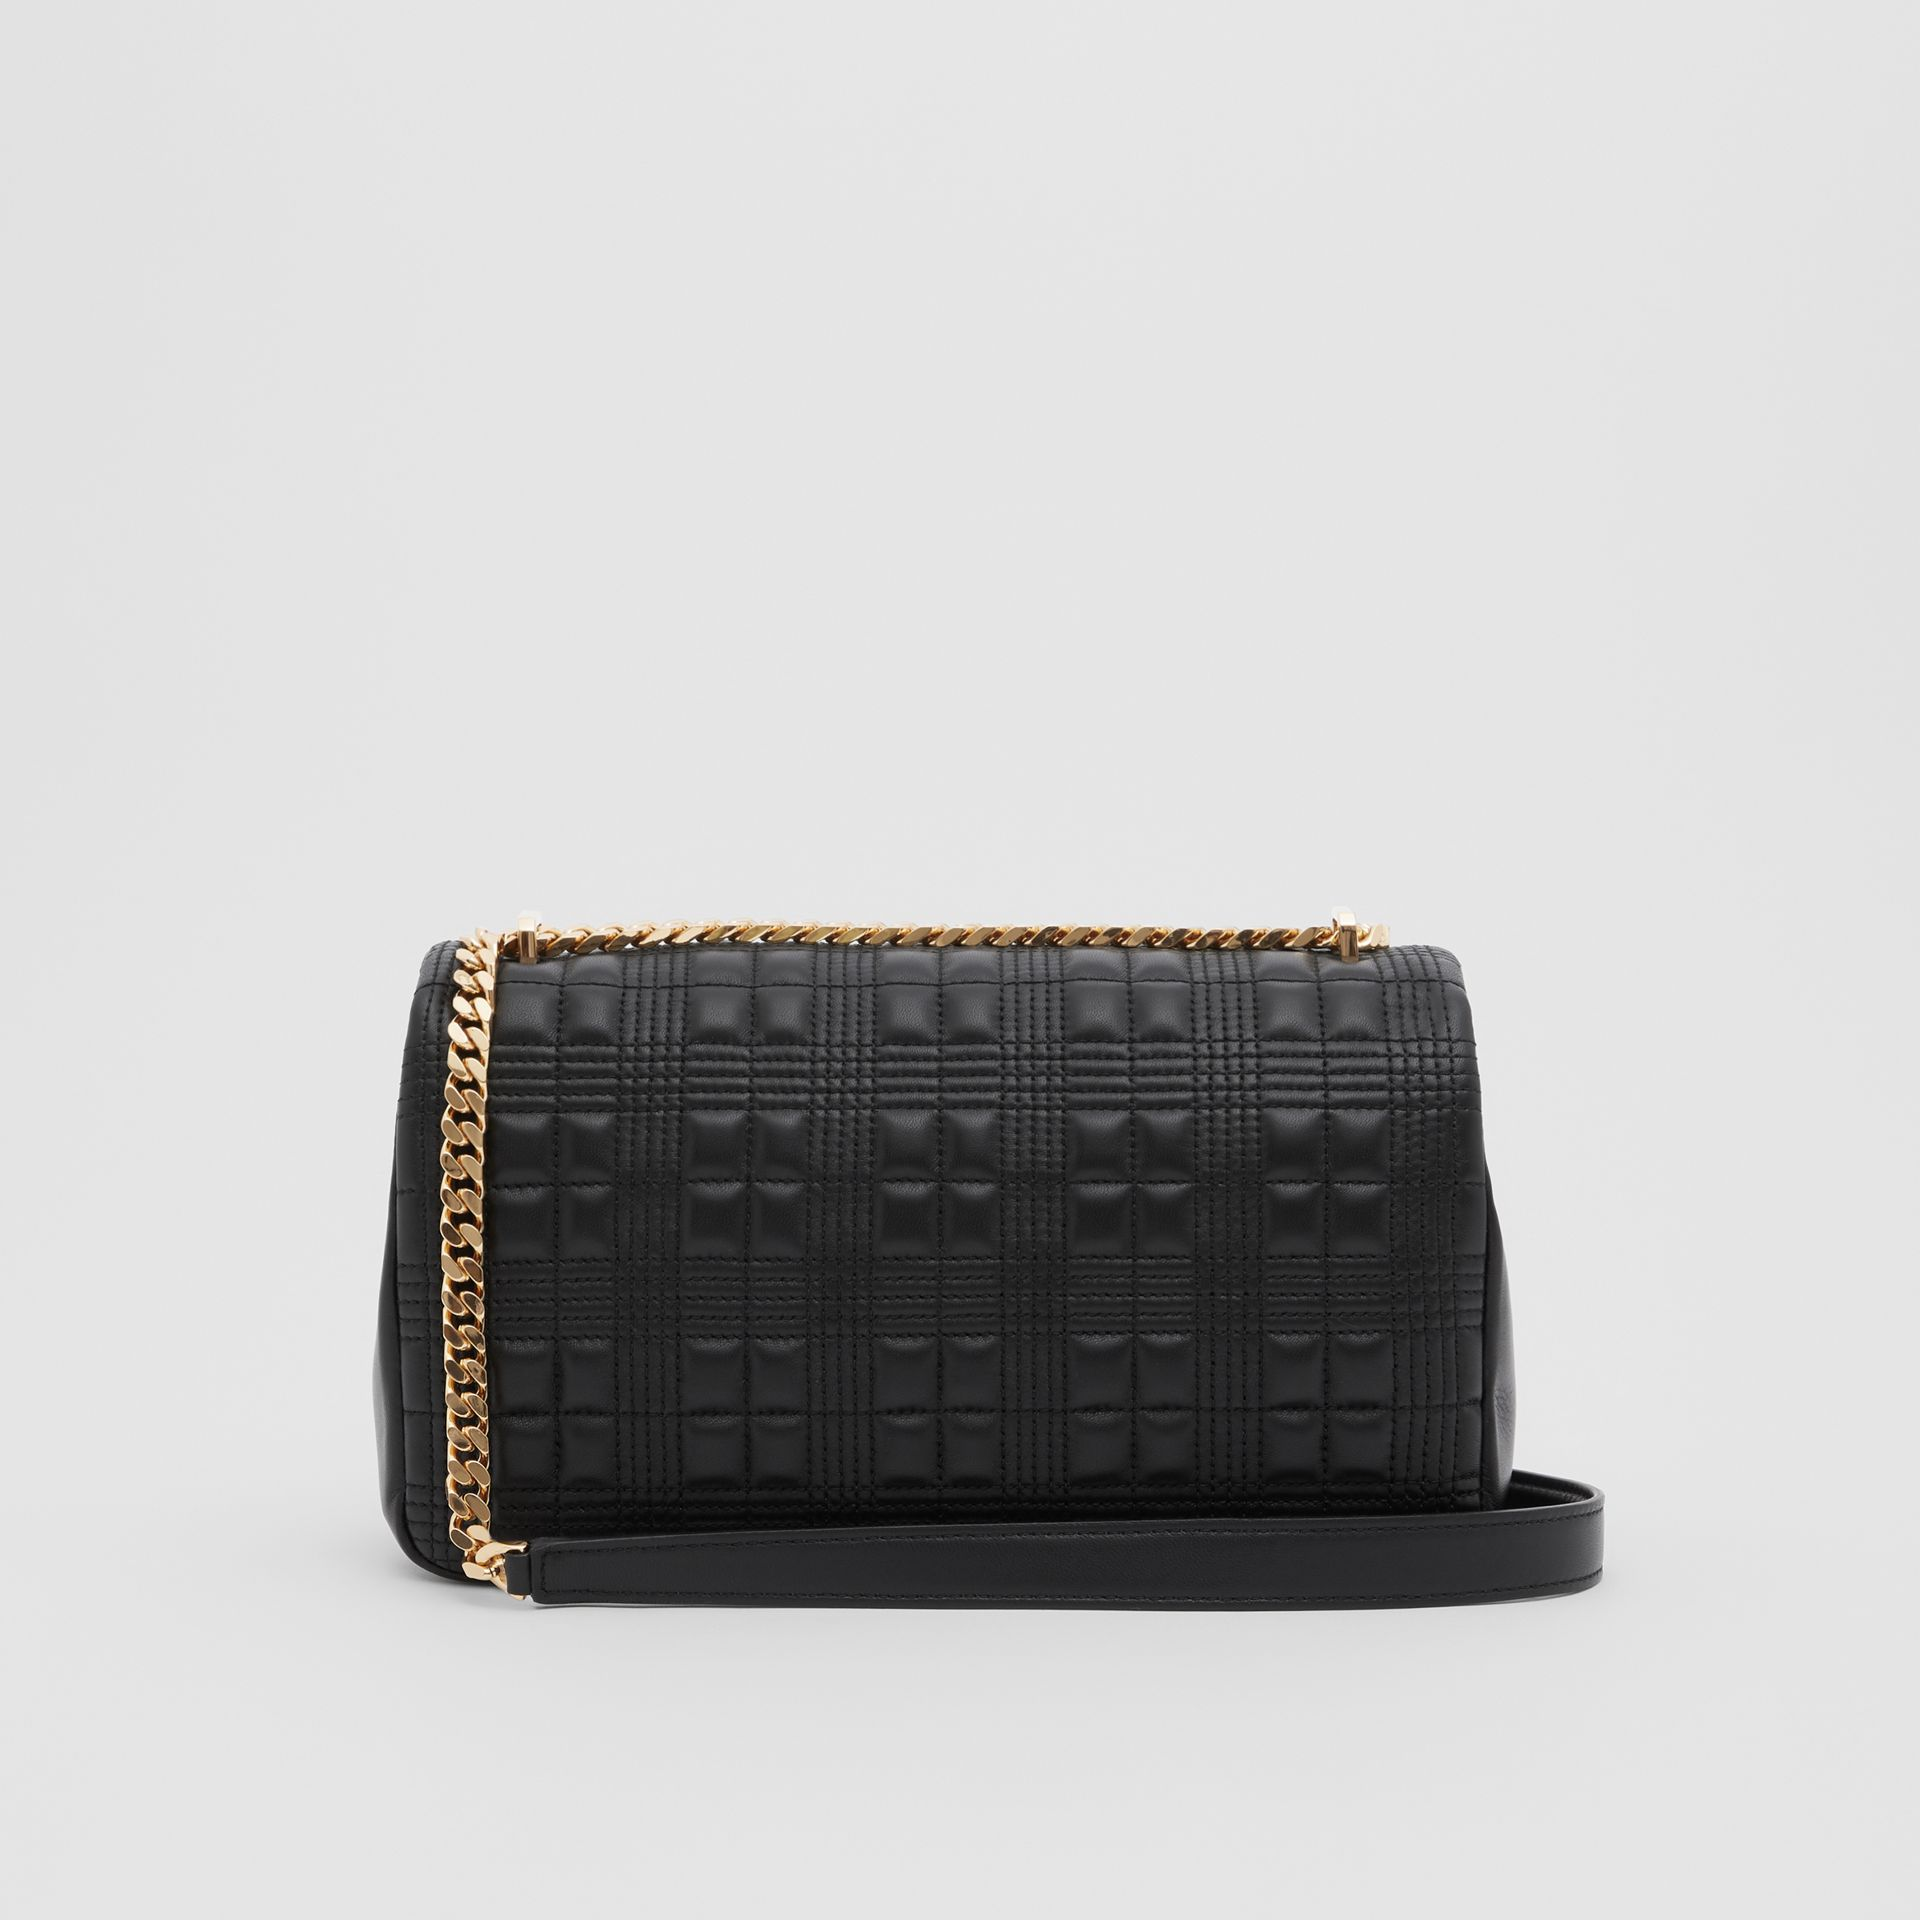 Medium Quilted Lambskin Lola Bag in Black - Women | Burberry United States - gallery image 5